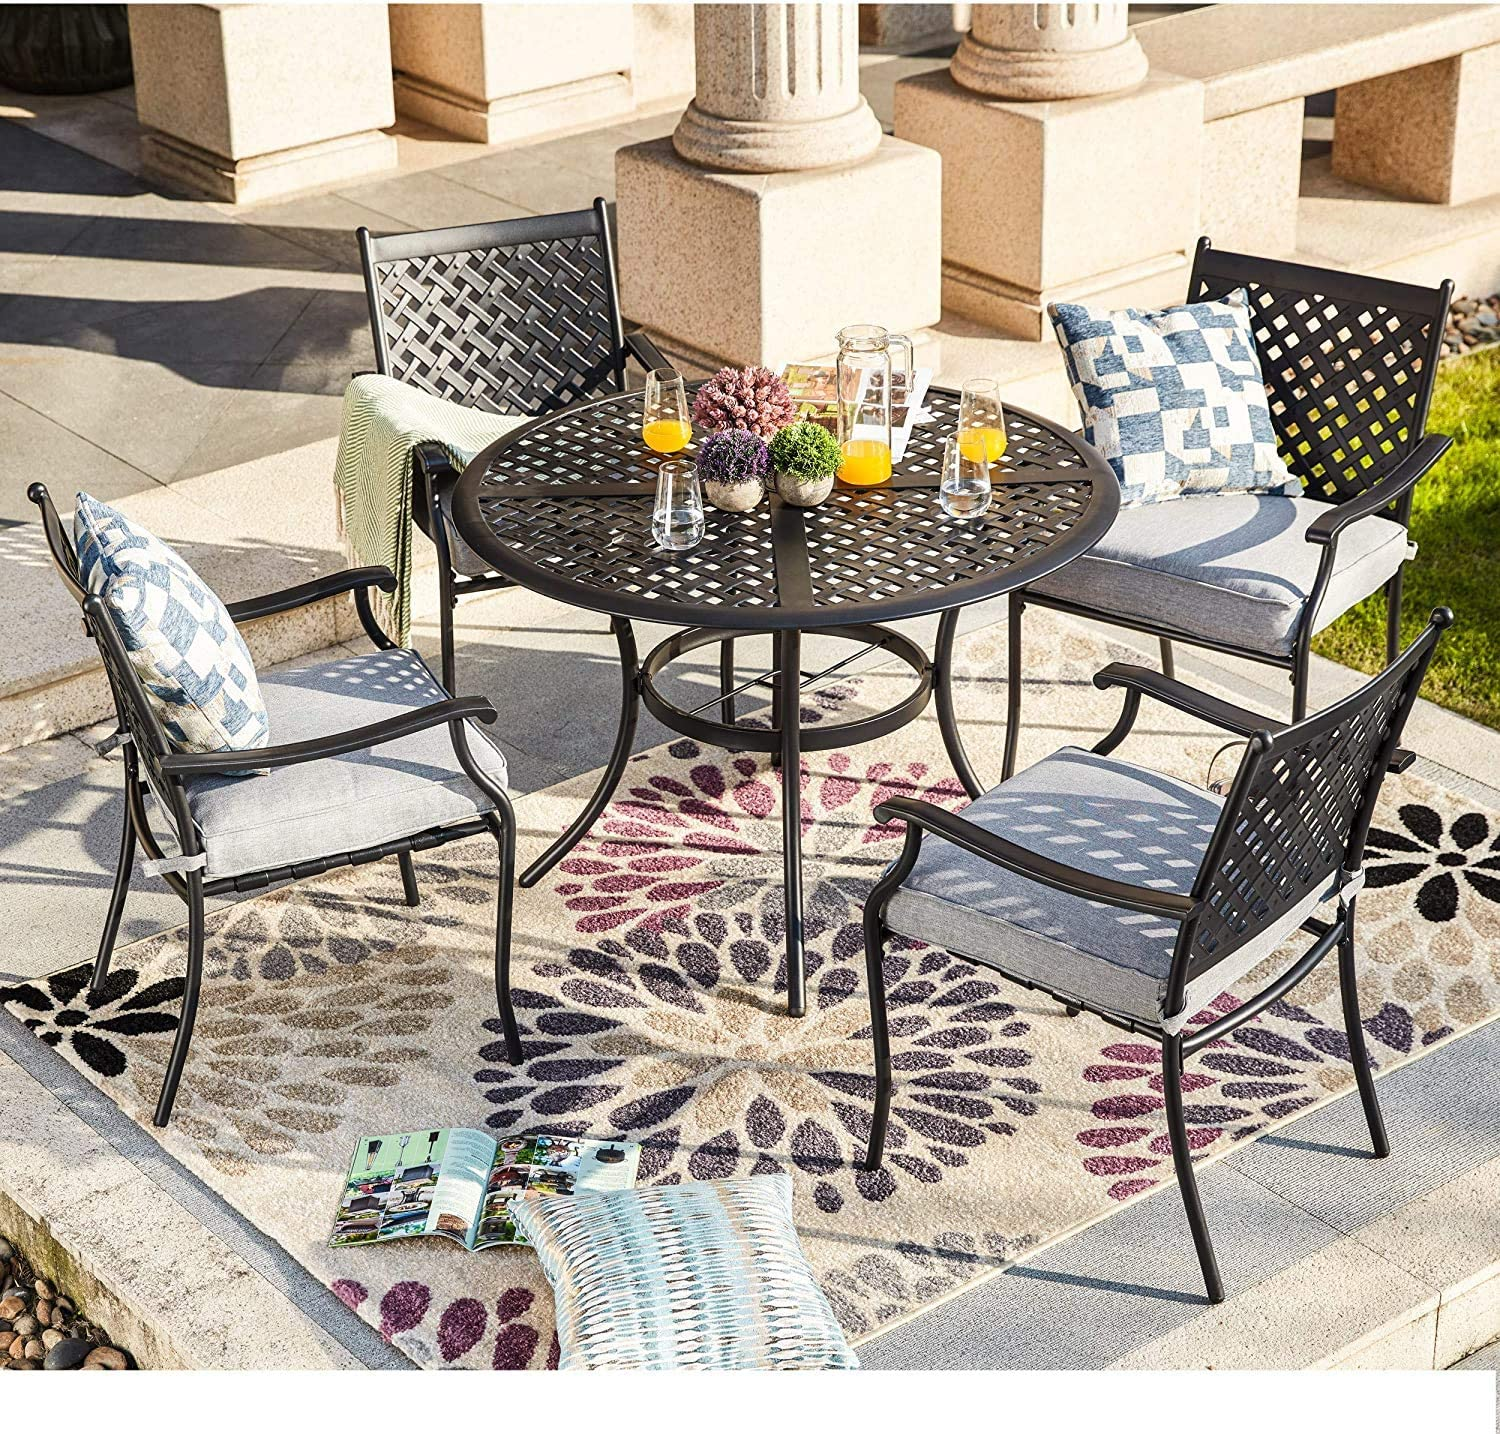 Amazon Com Lokatse Home 5 Piece Outdoor Patio Metal Dining Set With Iron Armrest Cushioned Chairs And Steel Round Table With Umbrella Hole Grey Garden Outdoor